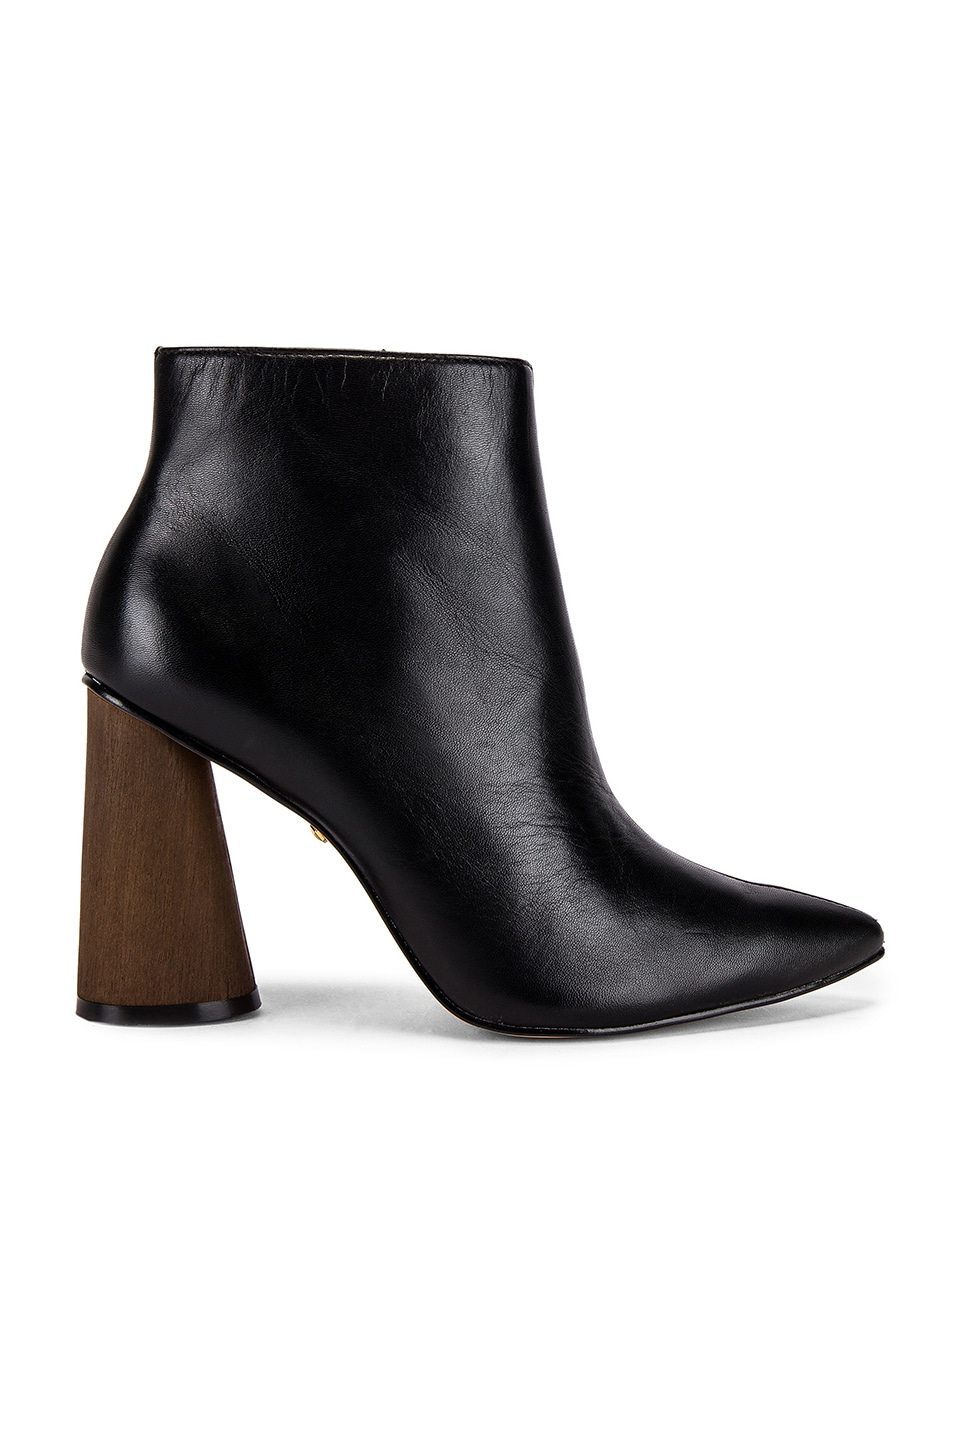 RAYE Braxton Bootie in Black